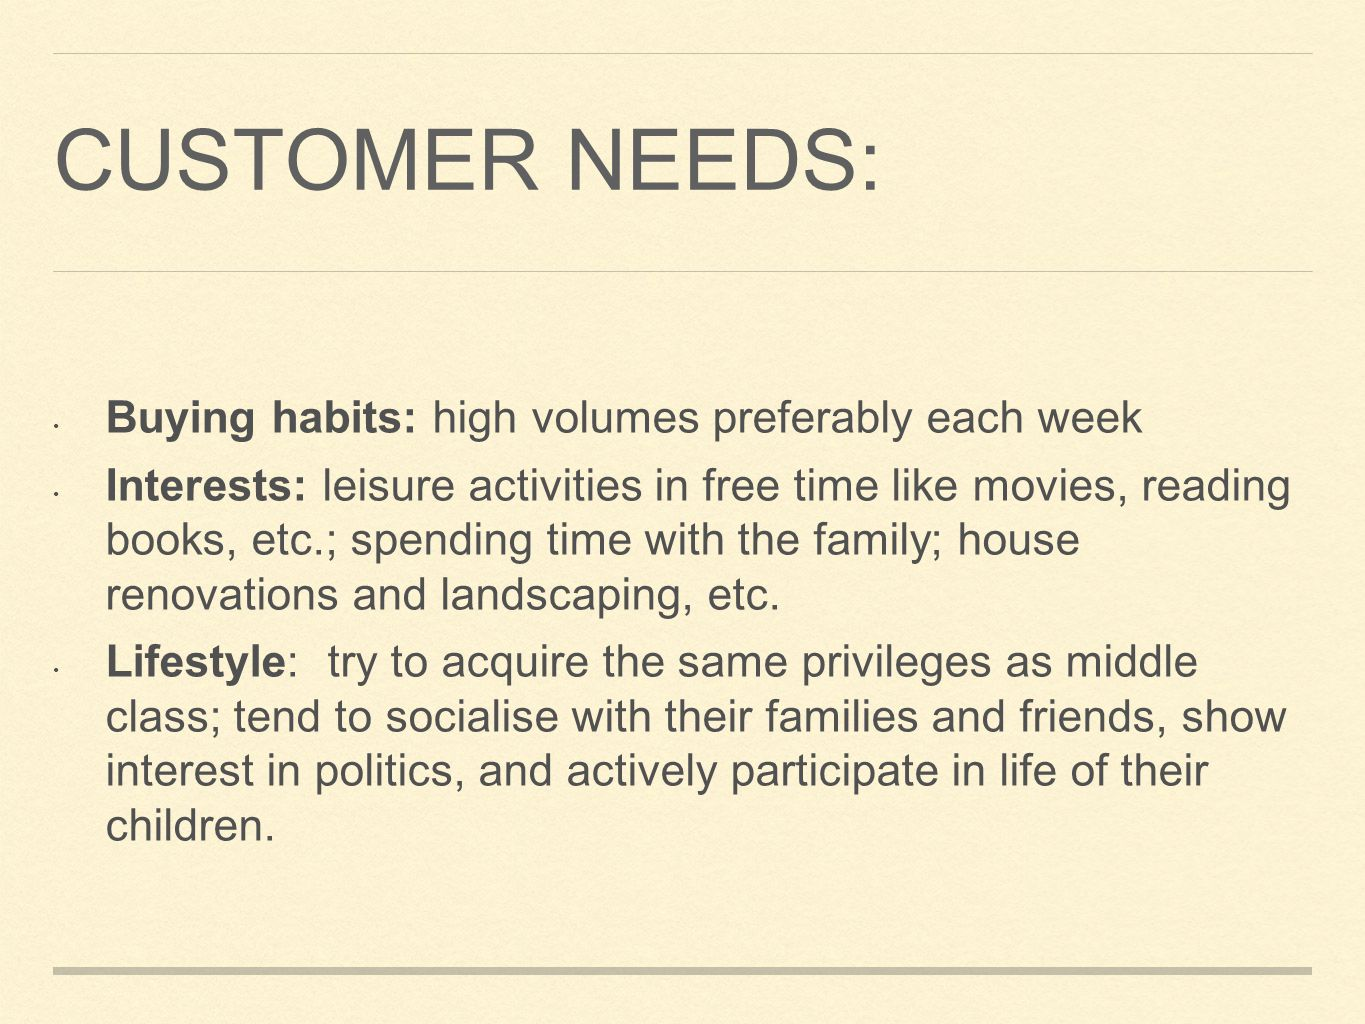 CUSTOMER NEEDS: Buying habits: high volumes preferably each week Interests: leisure activities in free time like movies, reading books, etc.; spending time with the family; house renovations and landscaping, etc.